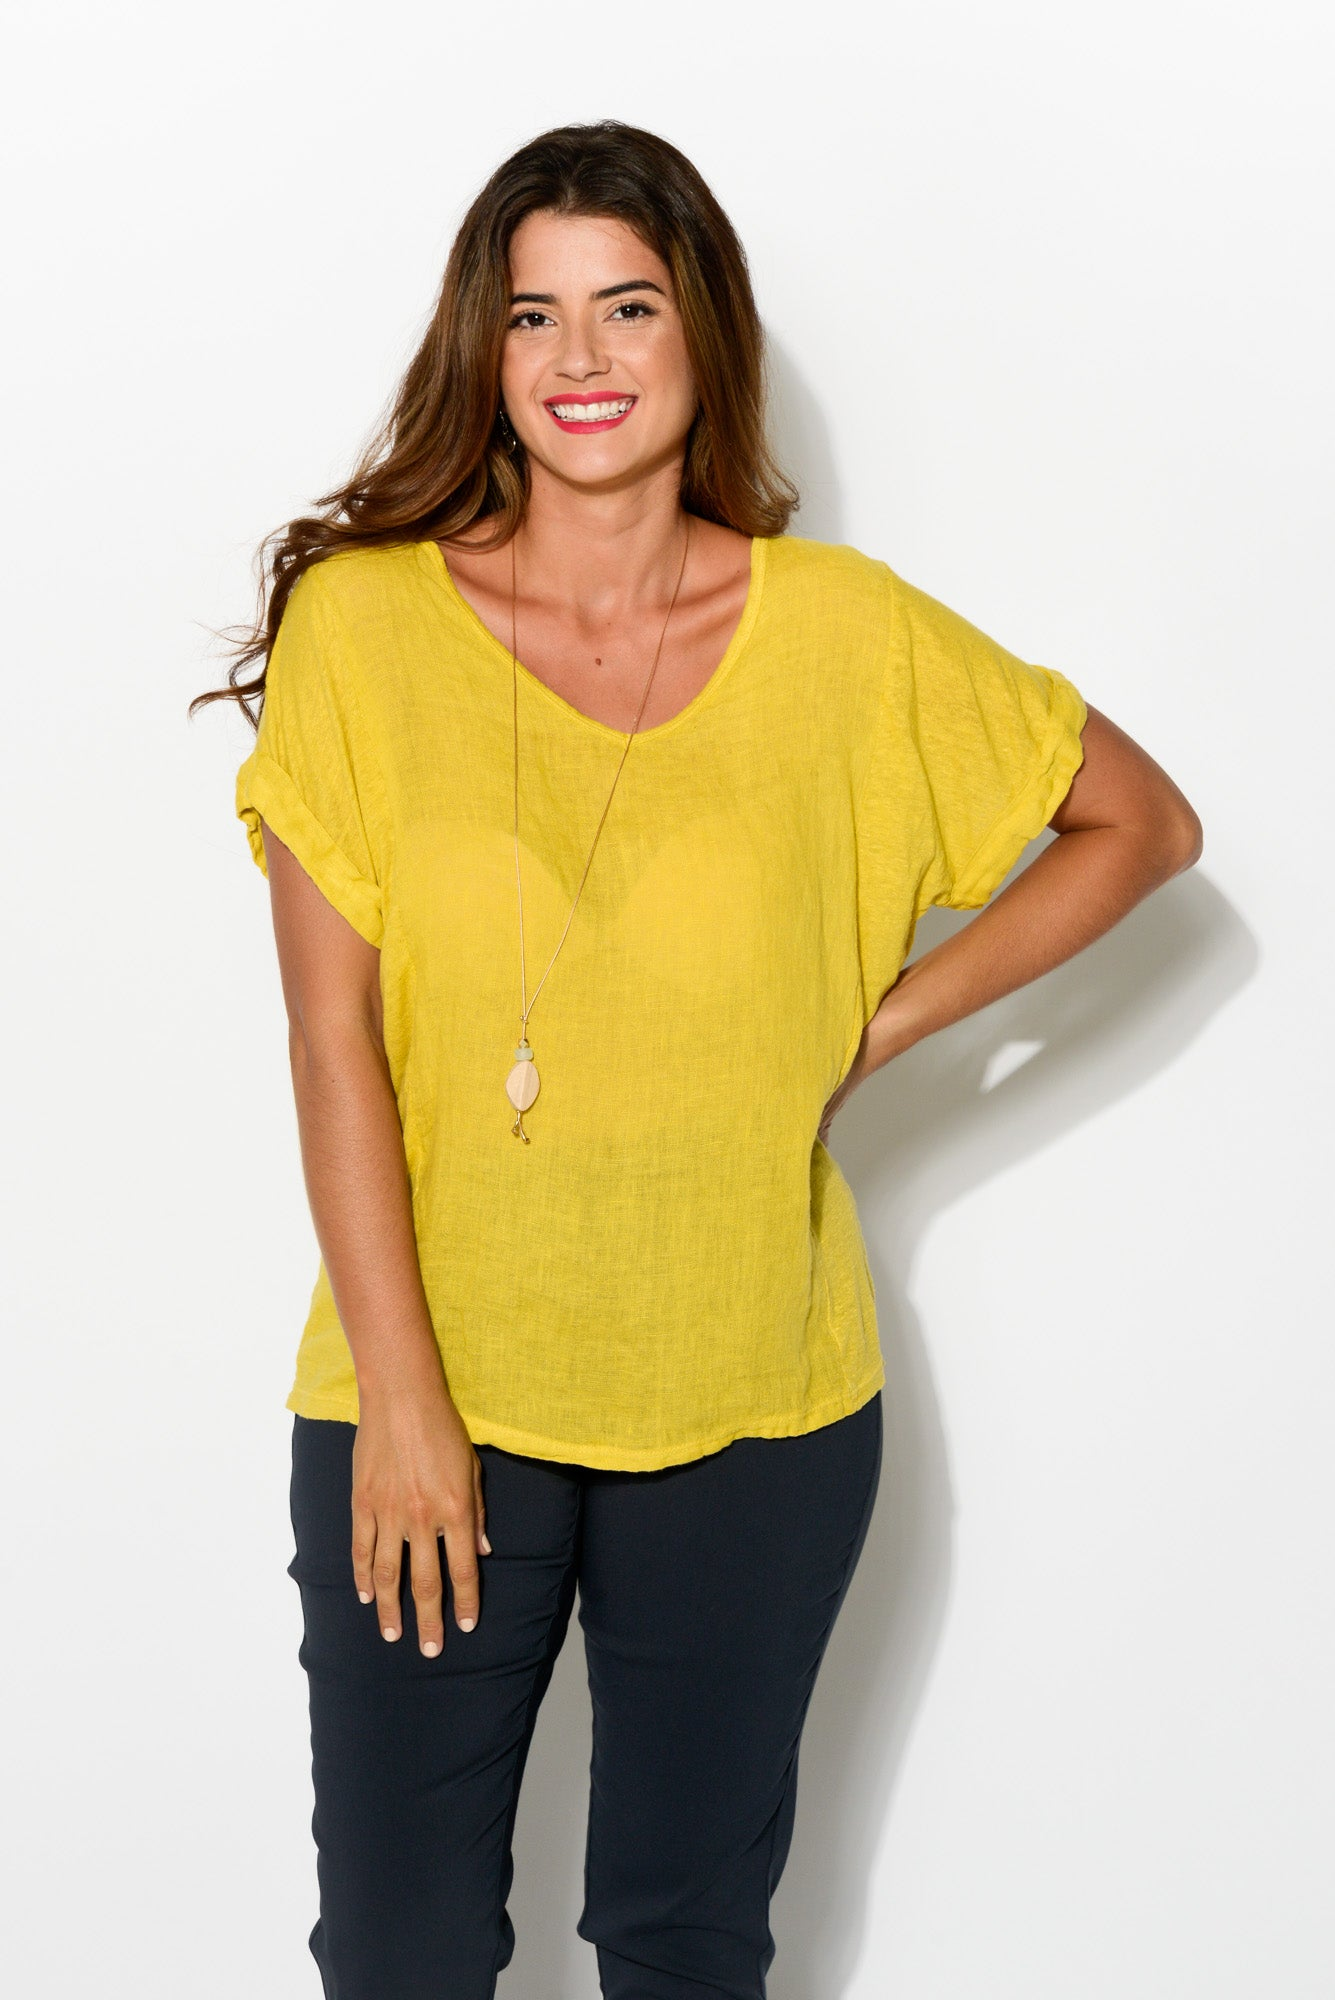 Anna Yellow Linen Tee - Blue Bungalow